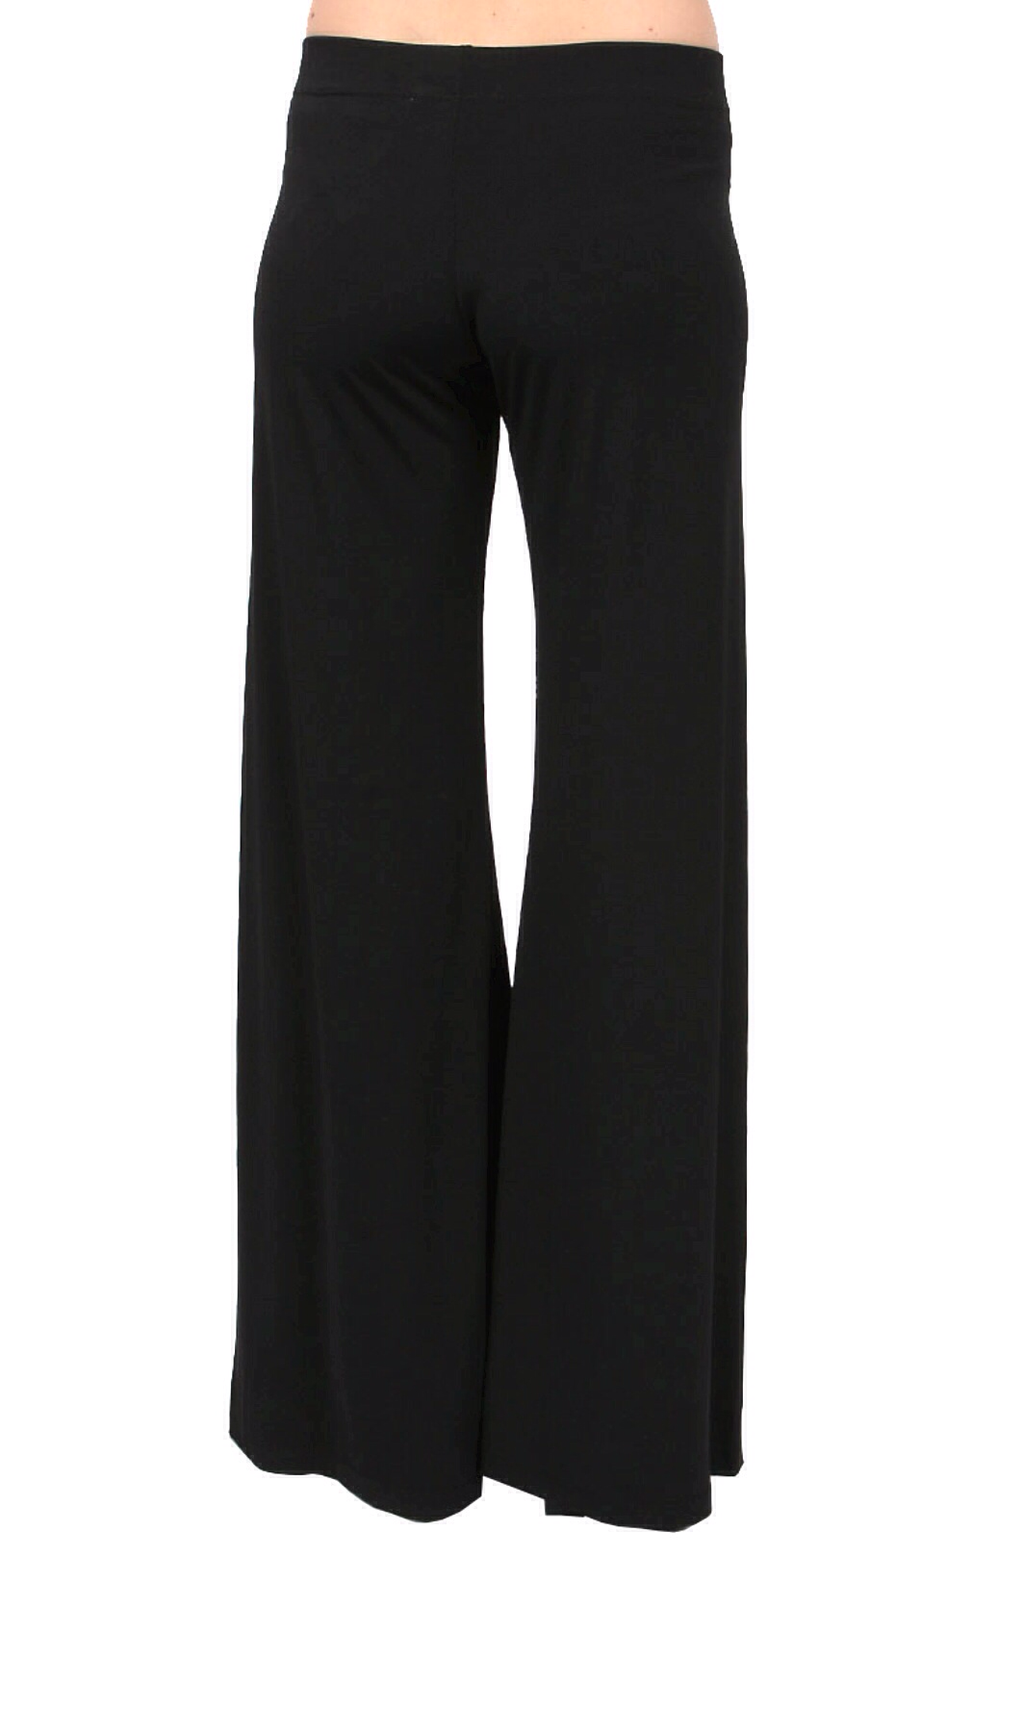 Veronica M Wide Leg Pants no pocket in solid black